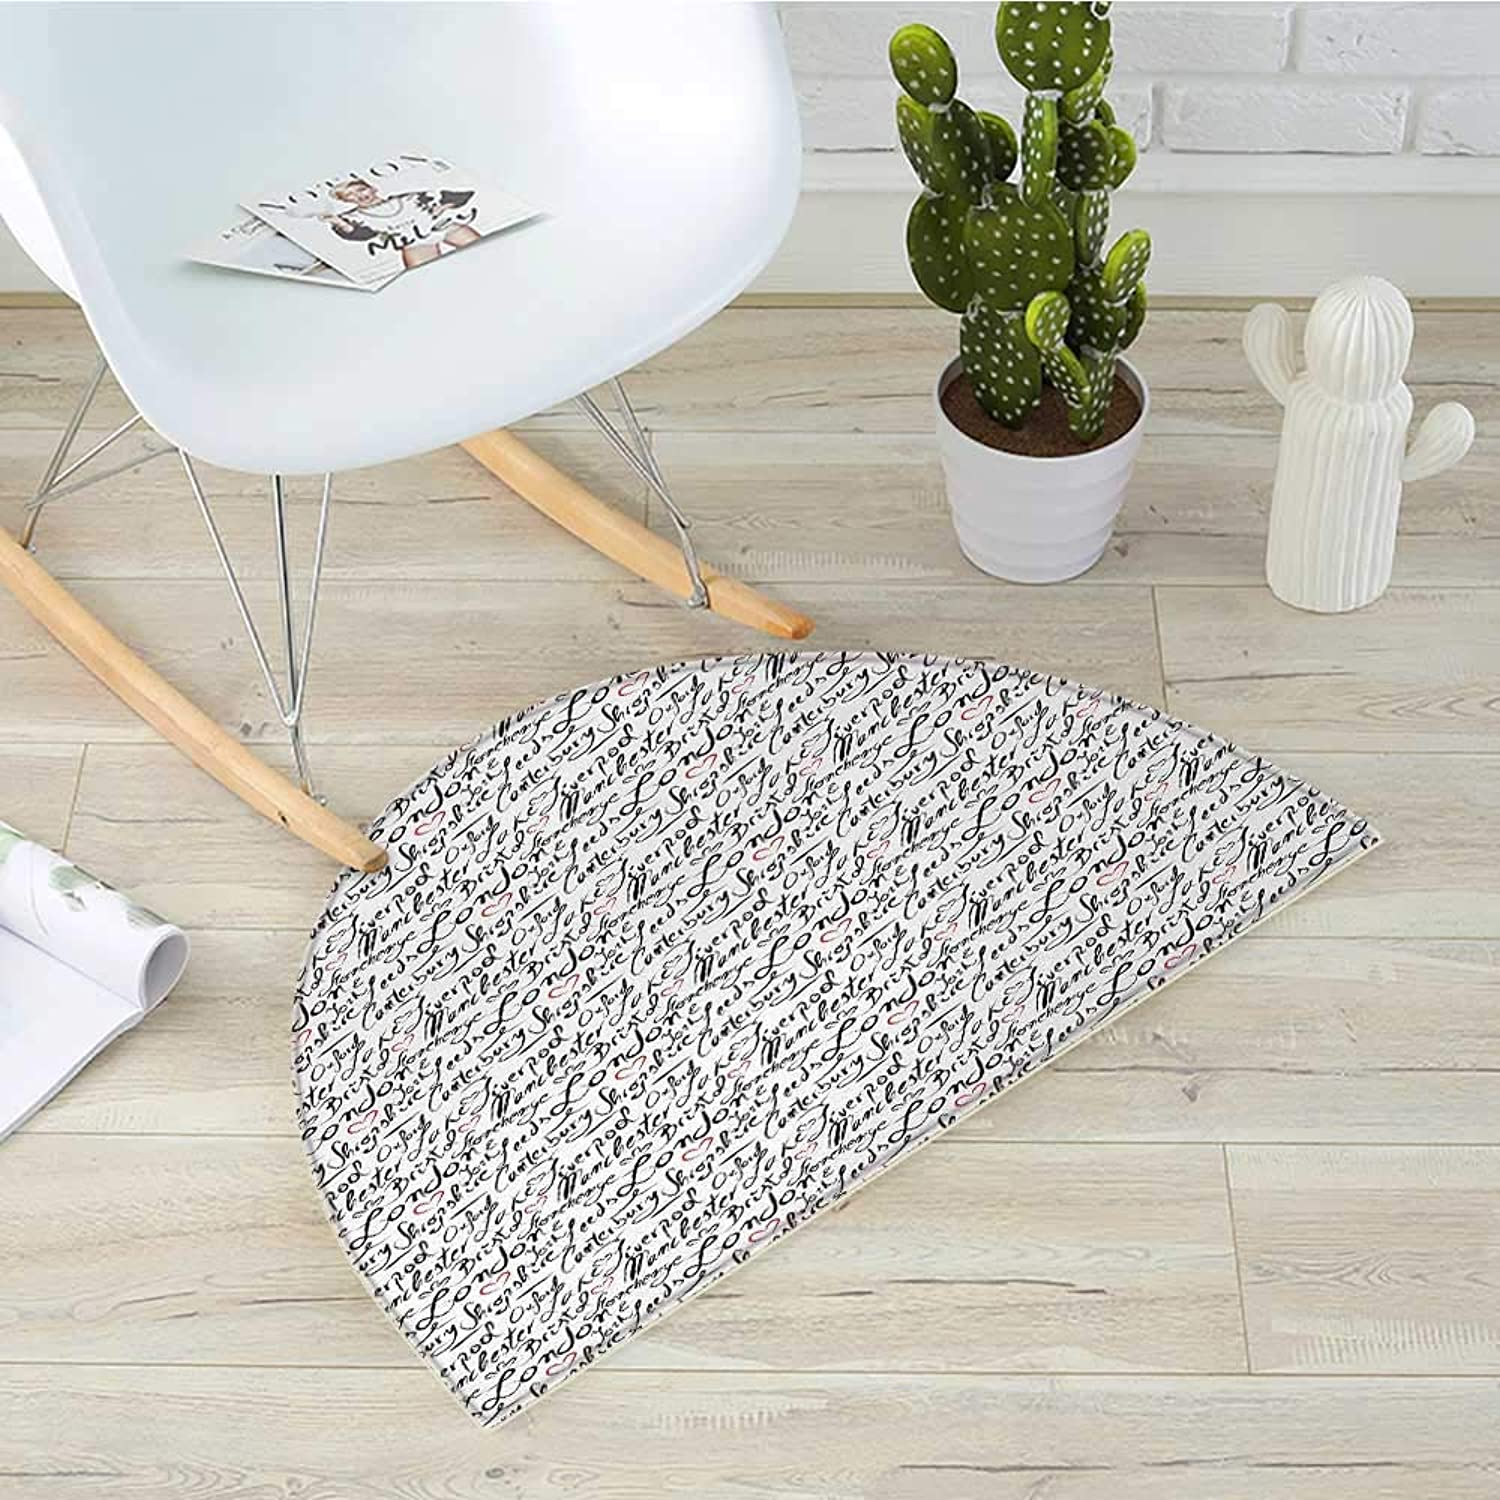 England Semicircular CushionFamous Cities in Monochrome Hand Lettering Style Bristol London Oxford Entry Door Mat H 39.3  xD 59  Black White Vermilion